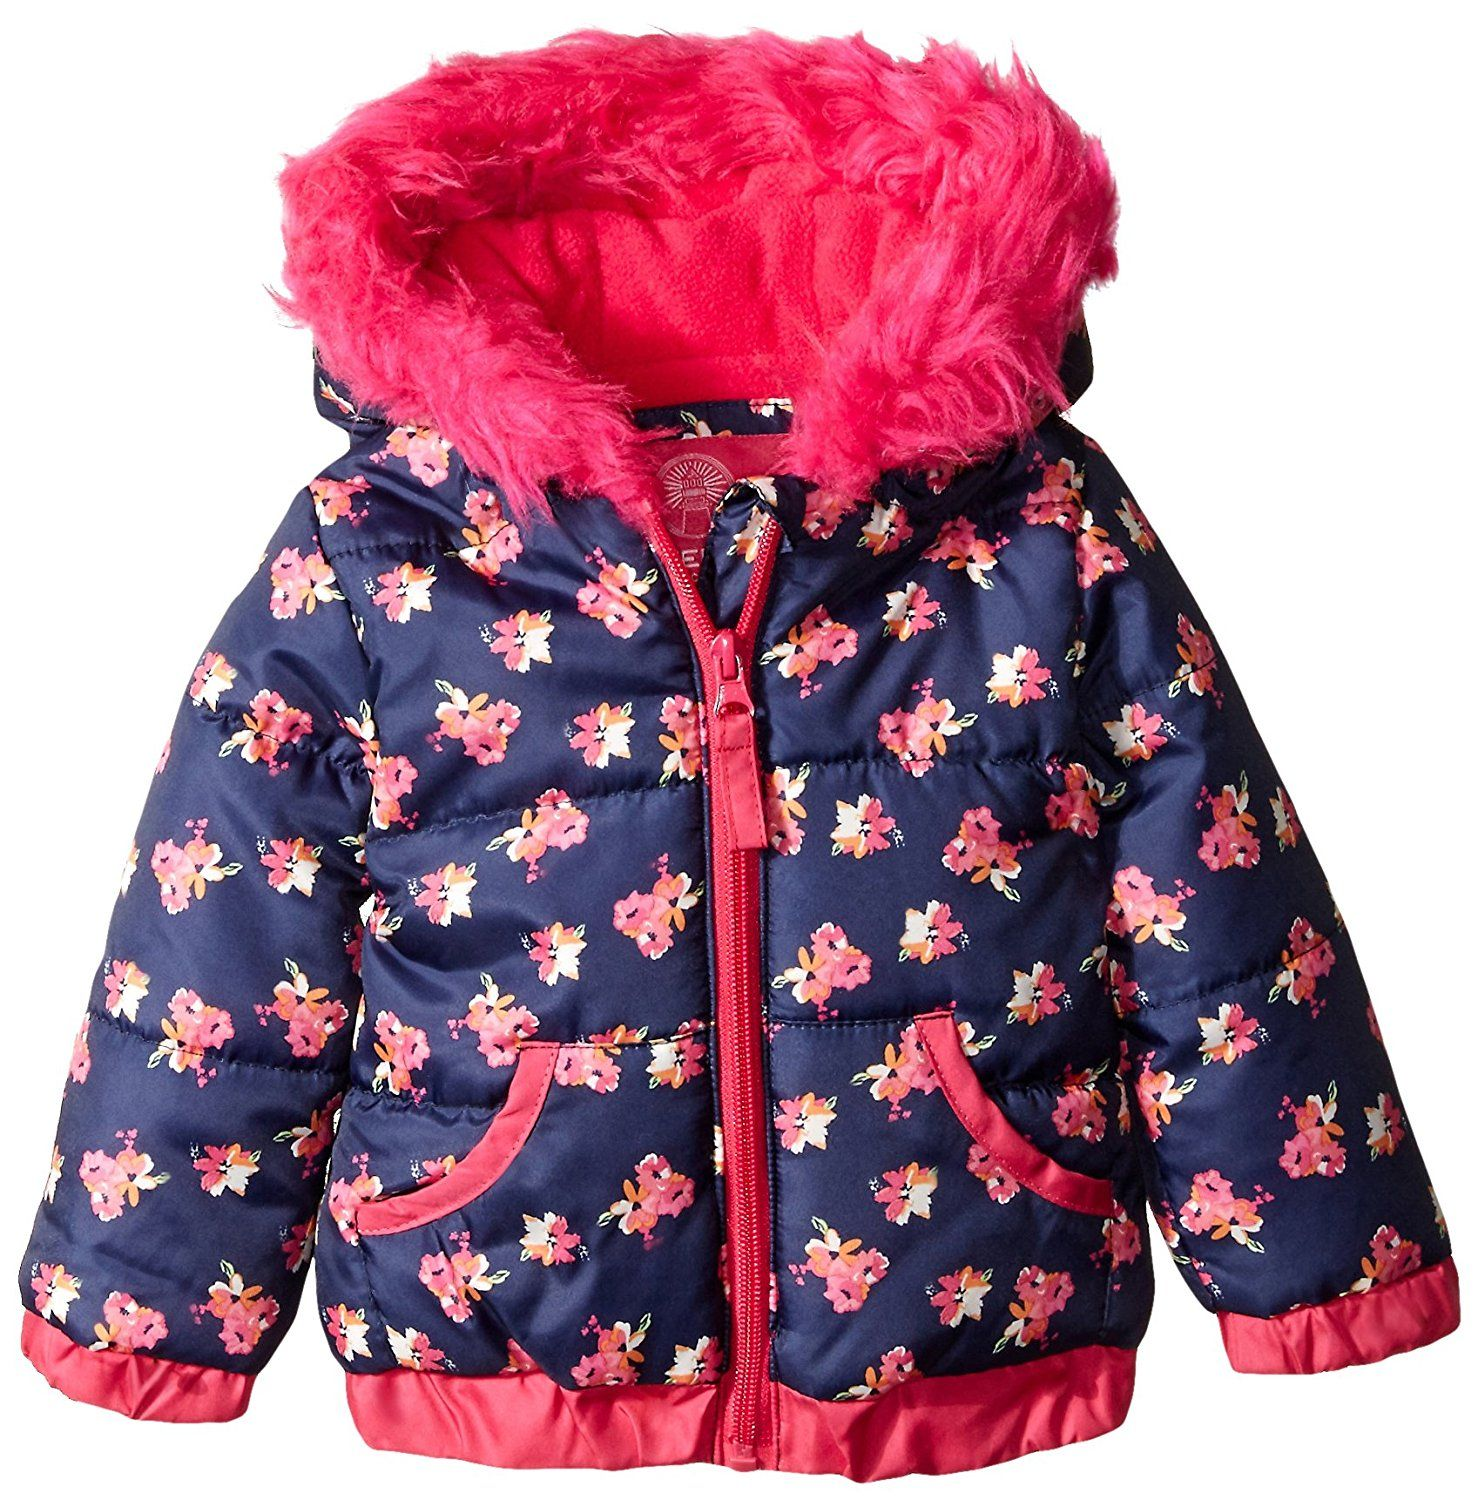 Weatherproof Baby Girls Infant Floral Puffer Jacket Check This Awesome Image Baby Clothes Baby Girl Jackets Jackets Clothes [ 1500 x 1478 Pixel ]